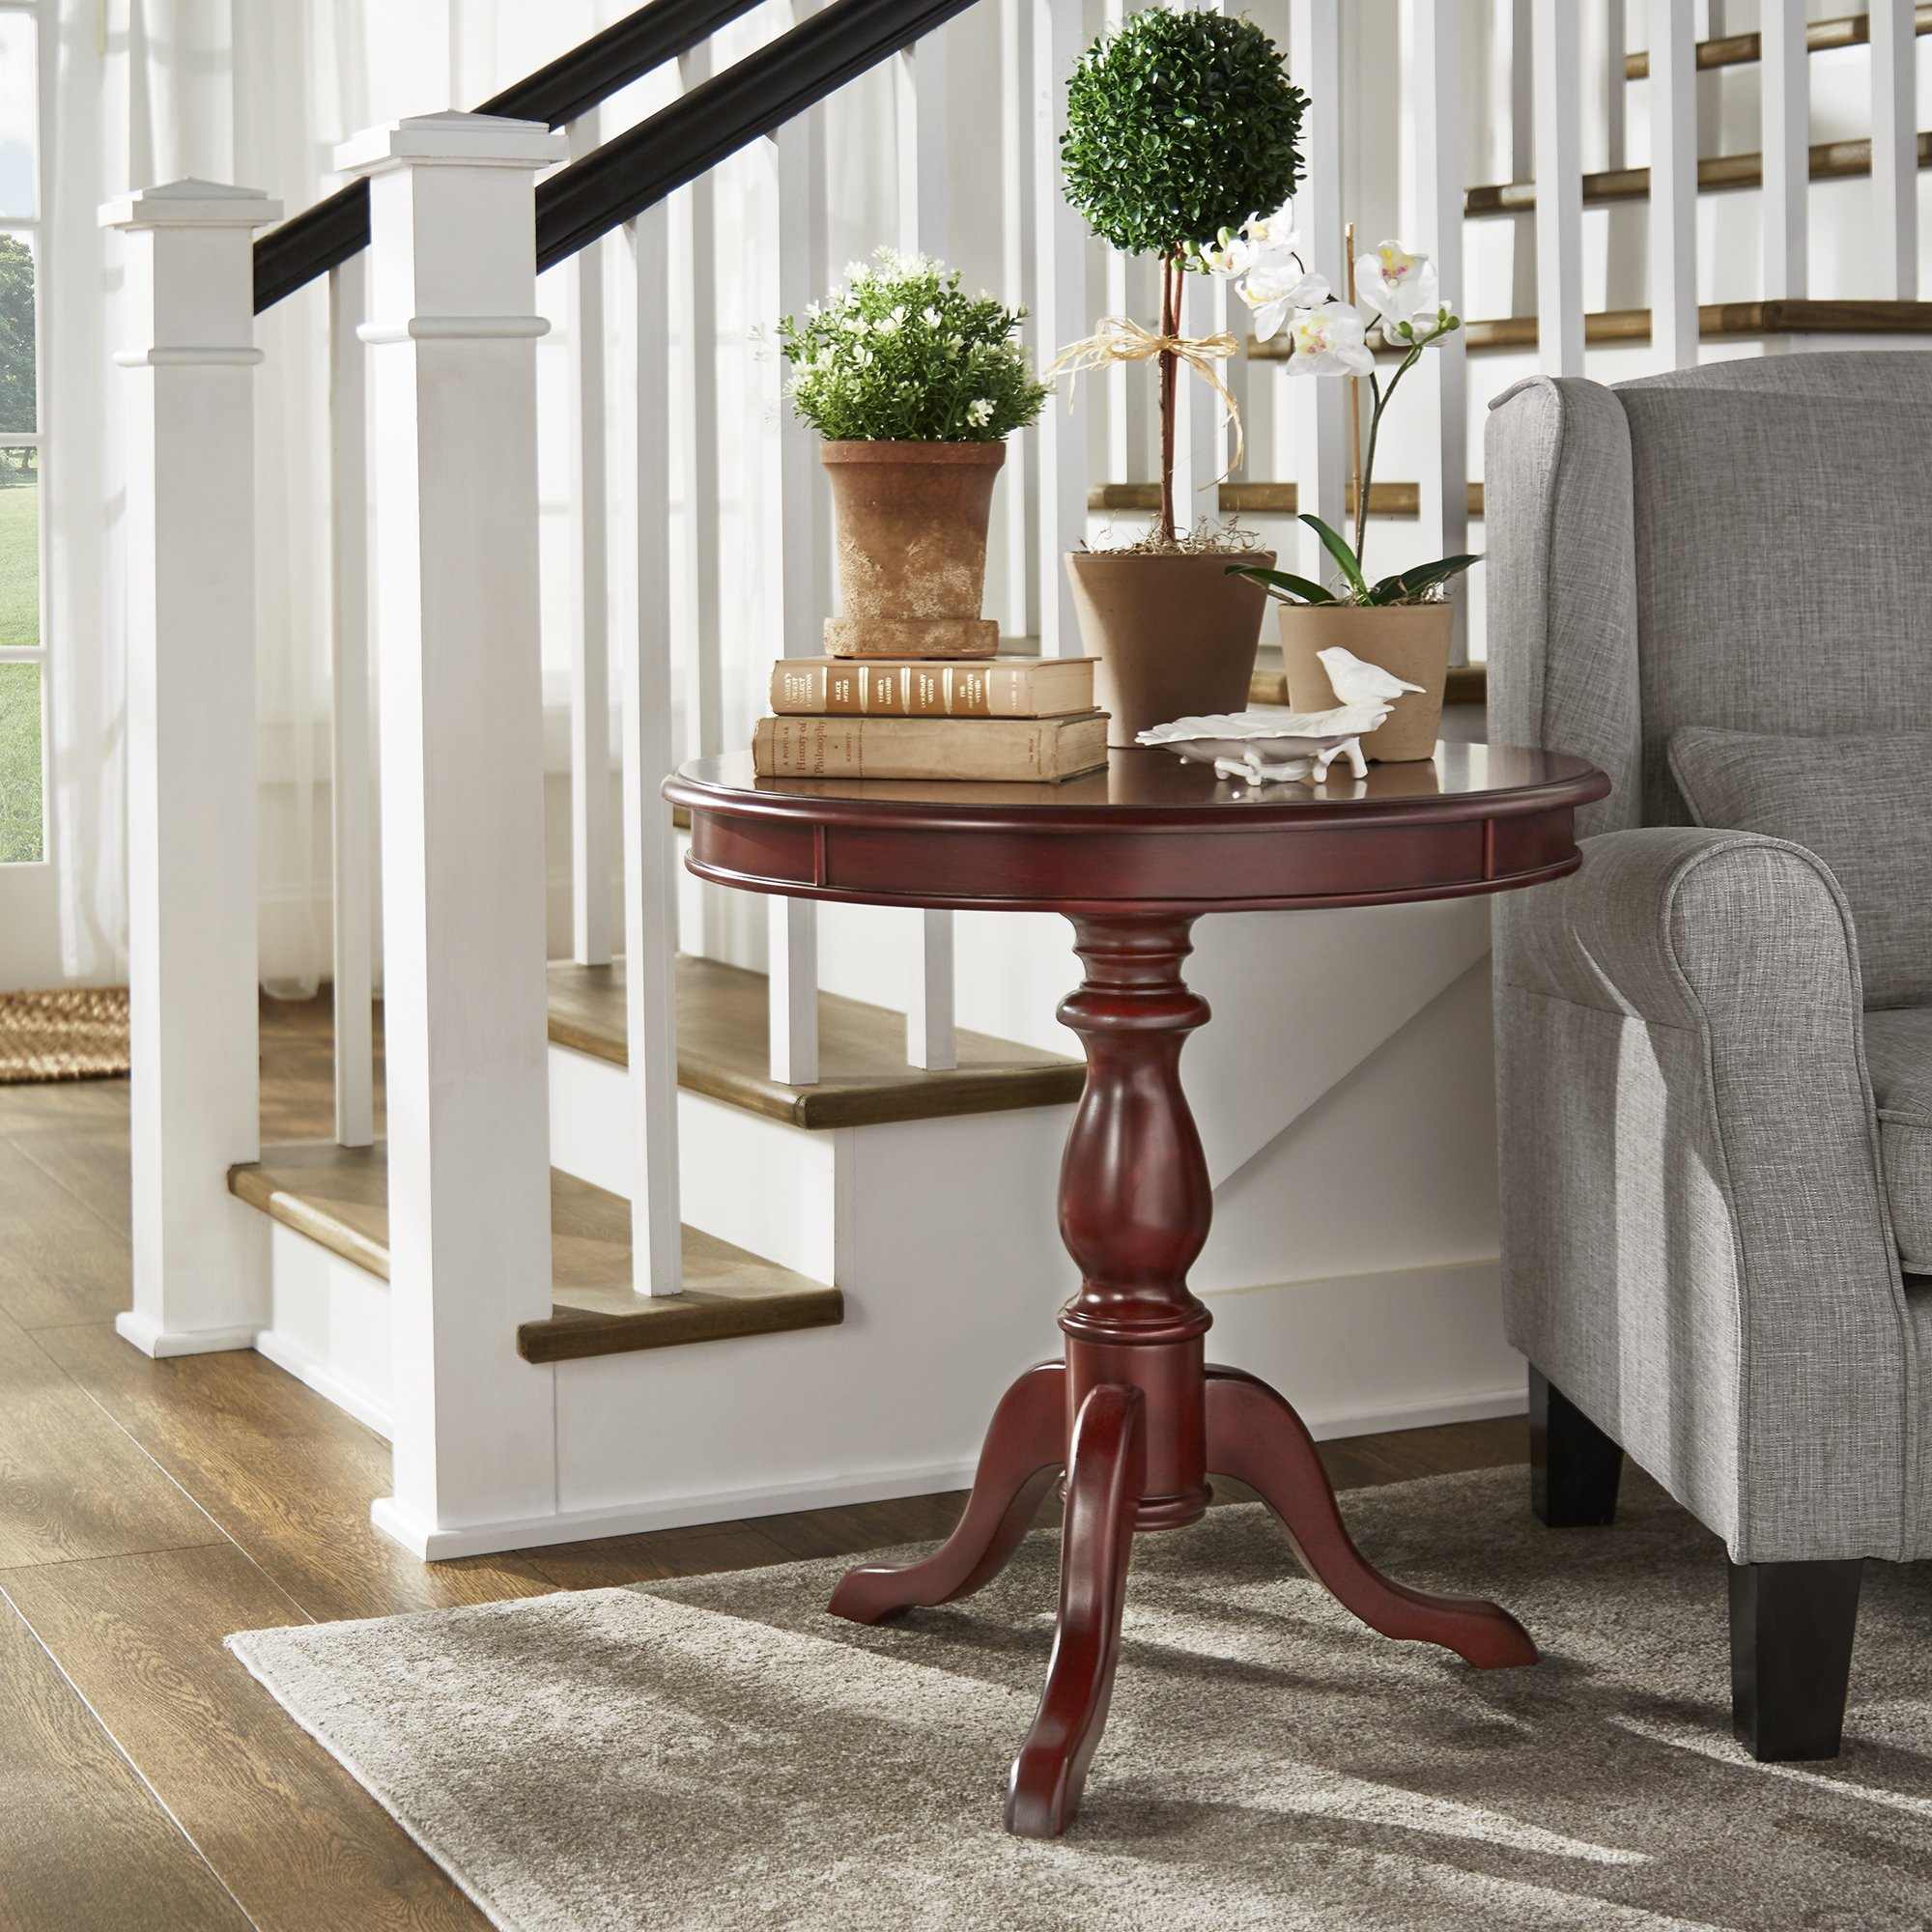 beckett antique wood pedestal accent table inspire classic free shipping today mirrored furniture ikea patio sets pallet kitchen pottery barn farmhouse coffee bases for granite